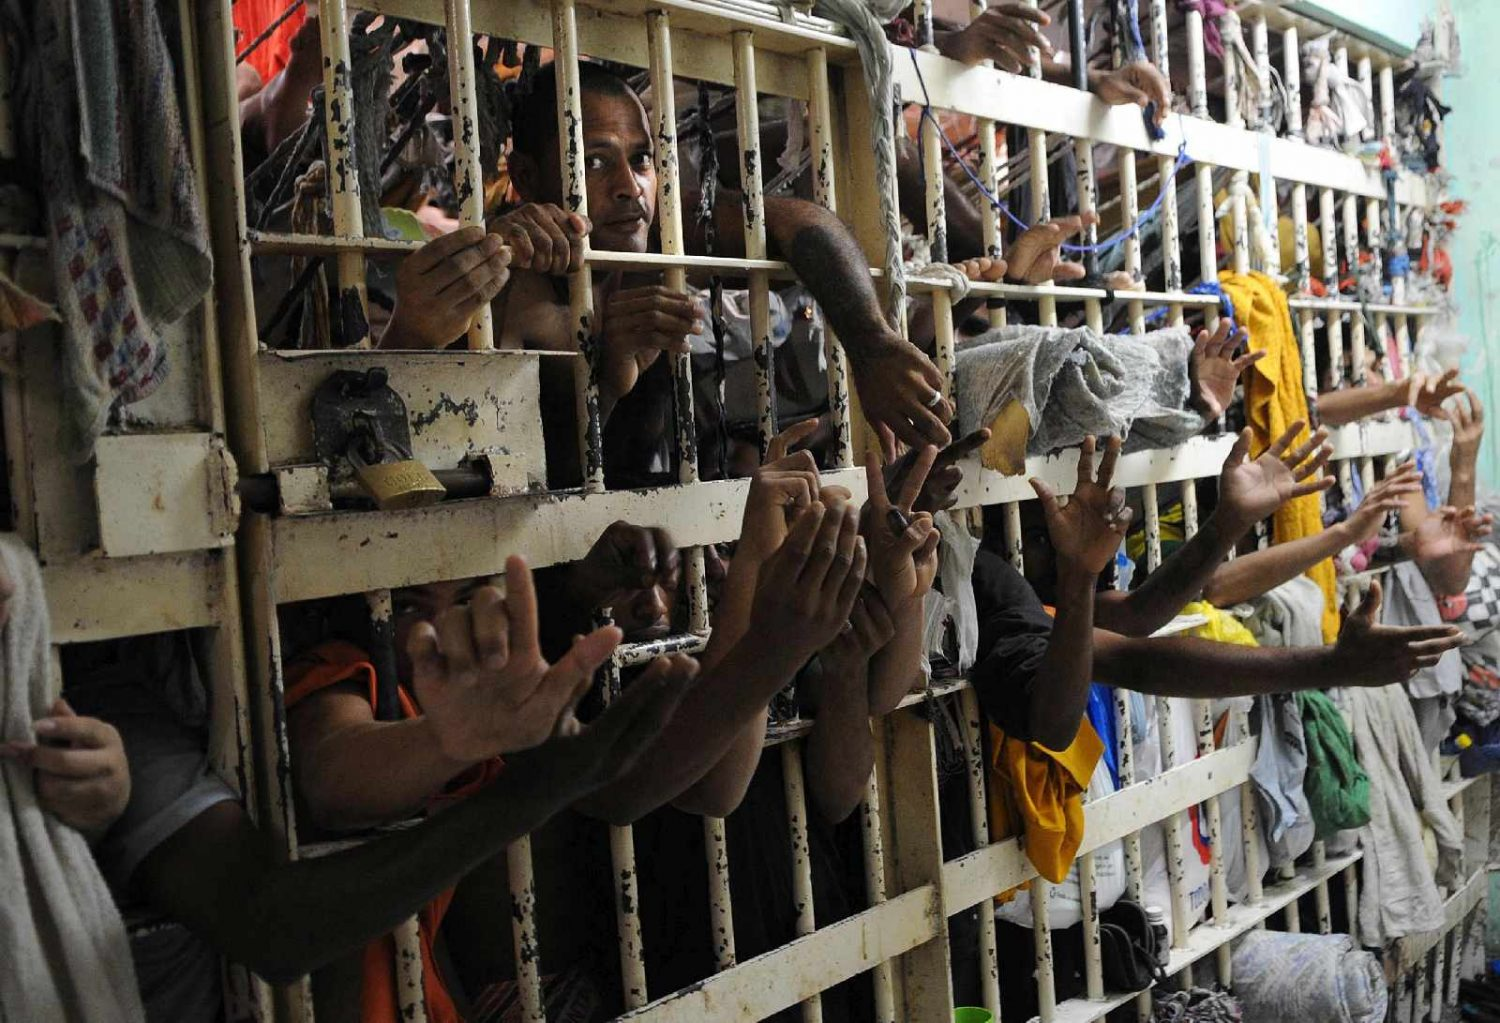 Top 7 Most Notorious Prisons In The World